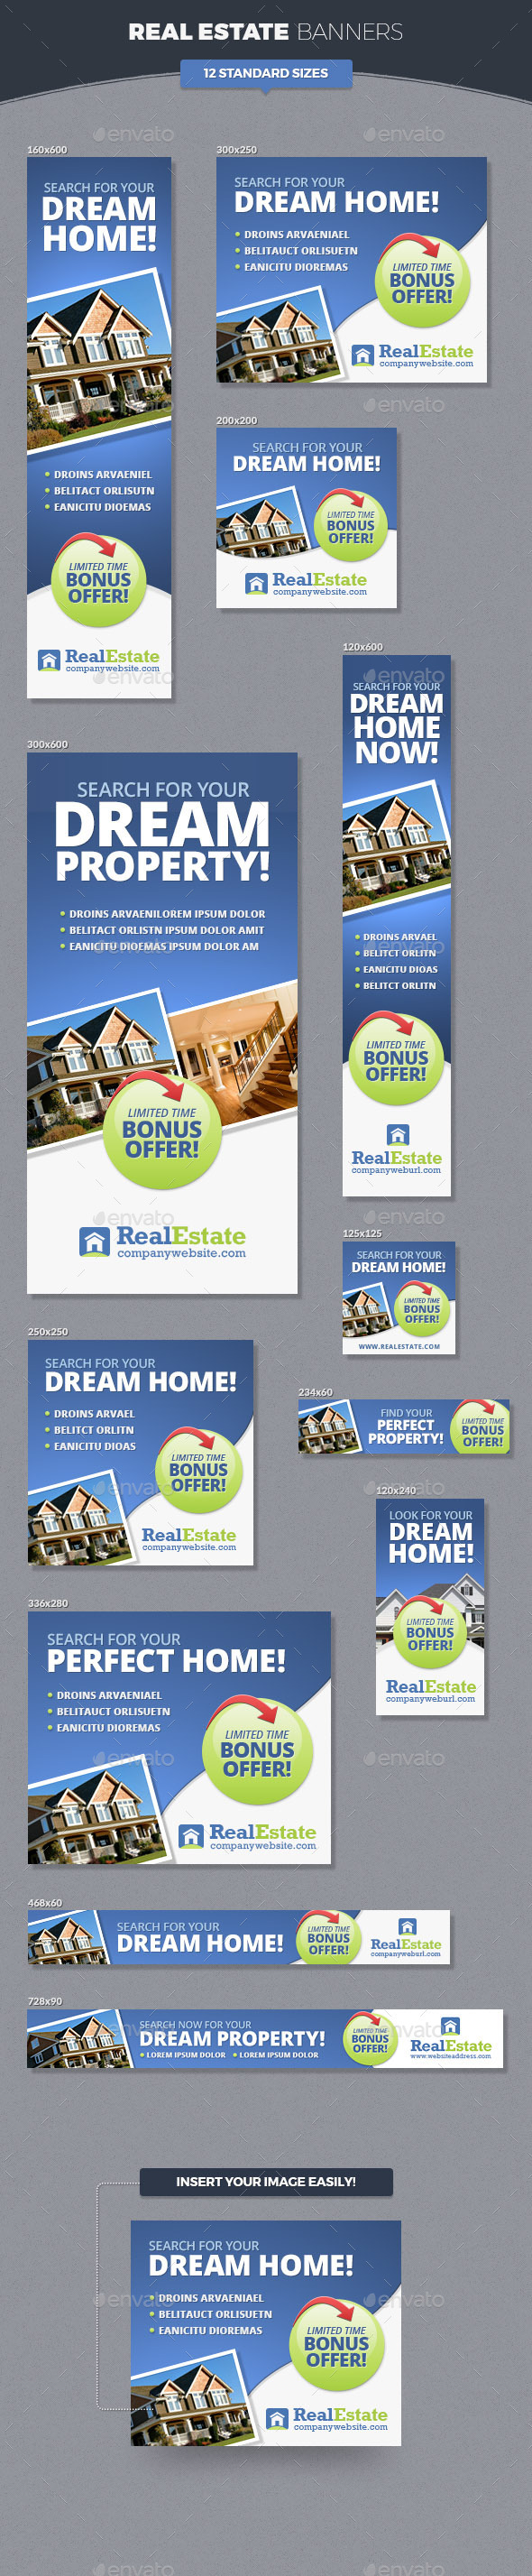 Real Estate Banner Ads by InfiniWeb | GraphicRiver